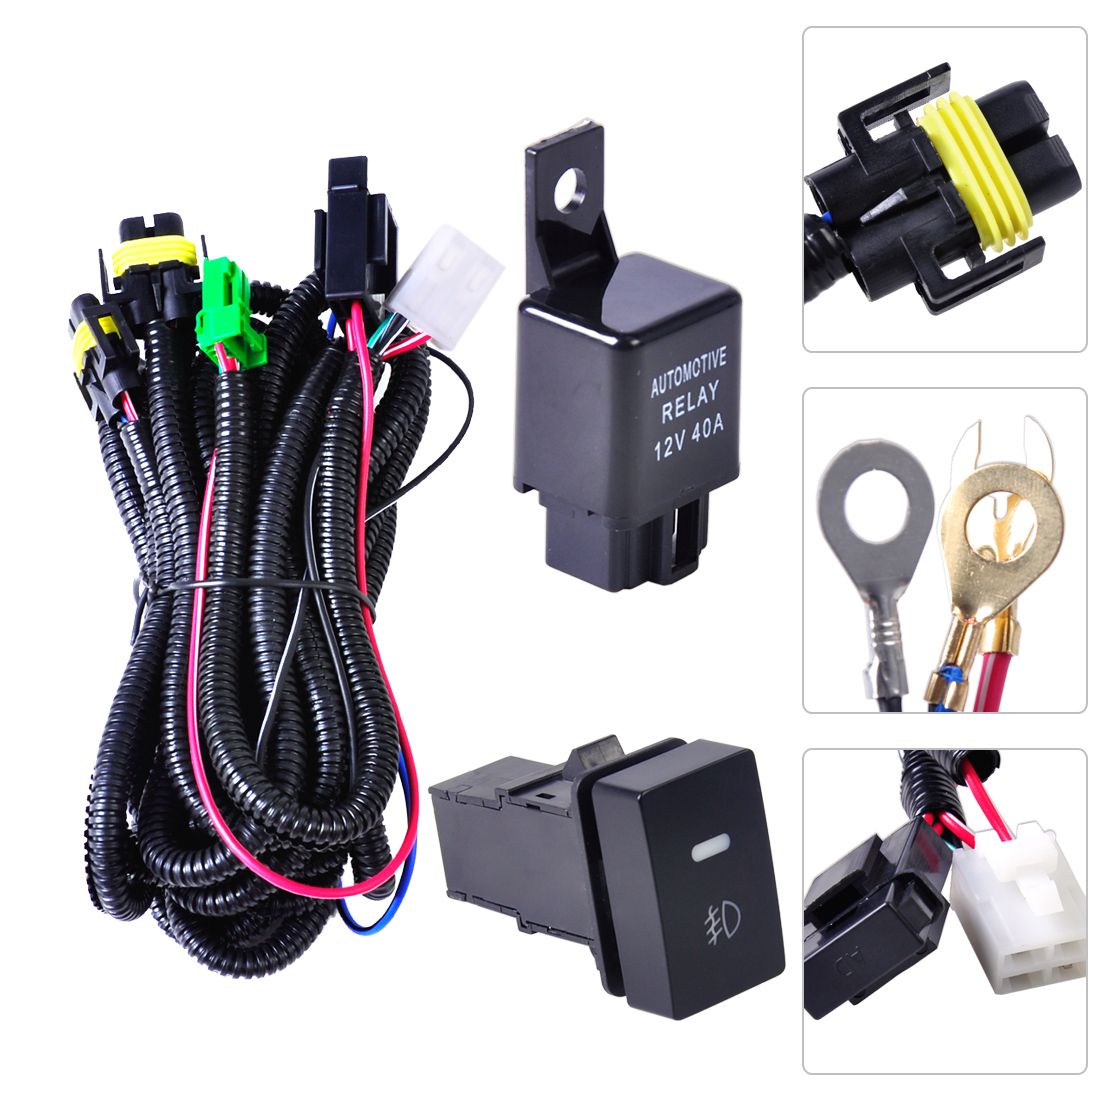 Ford Focus Acura Nissan Wiring Harness Sockets   Switch For H11 Fog Light Lamp